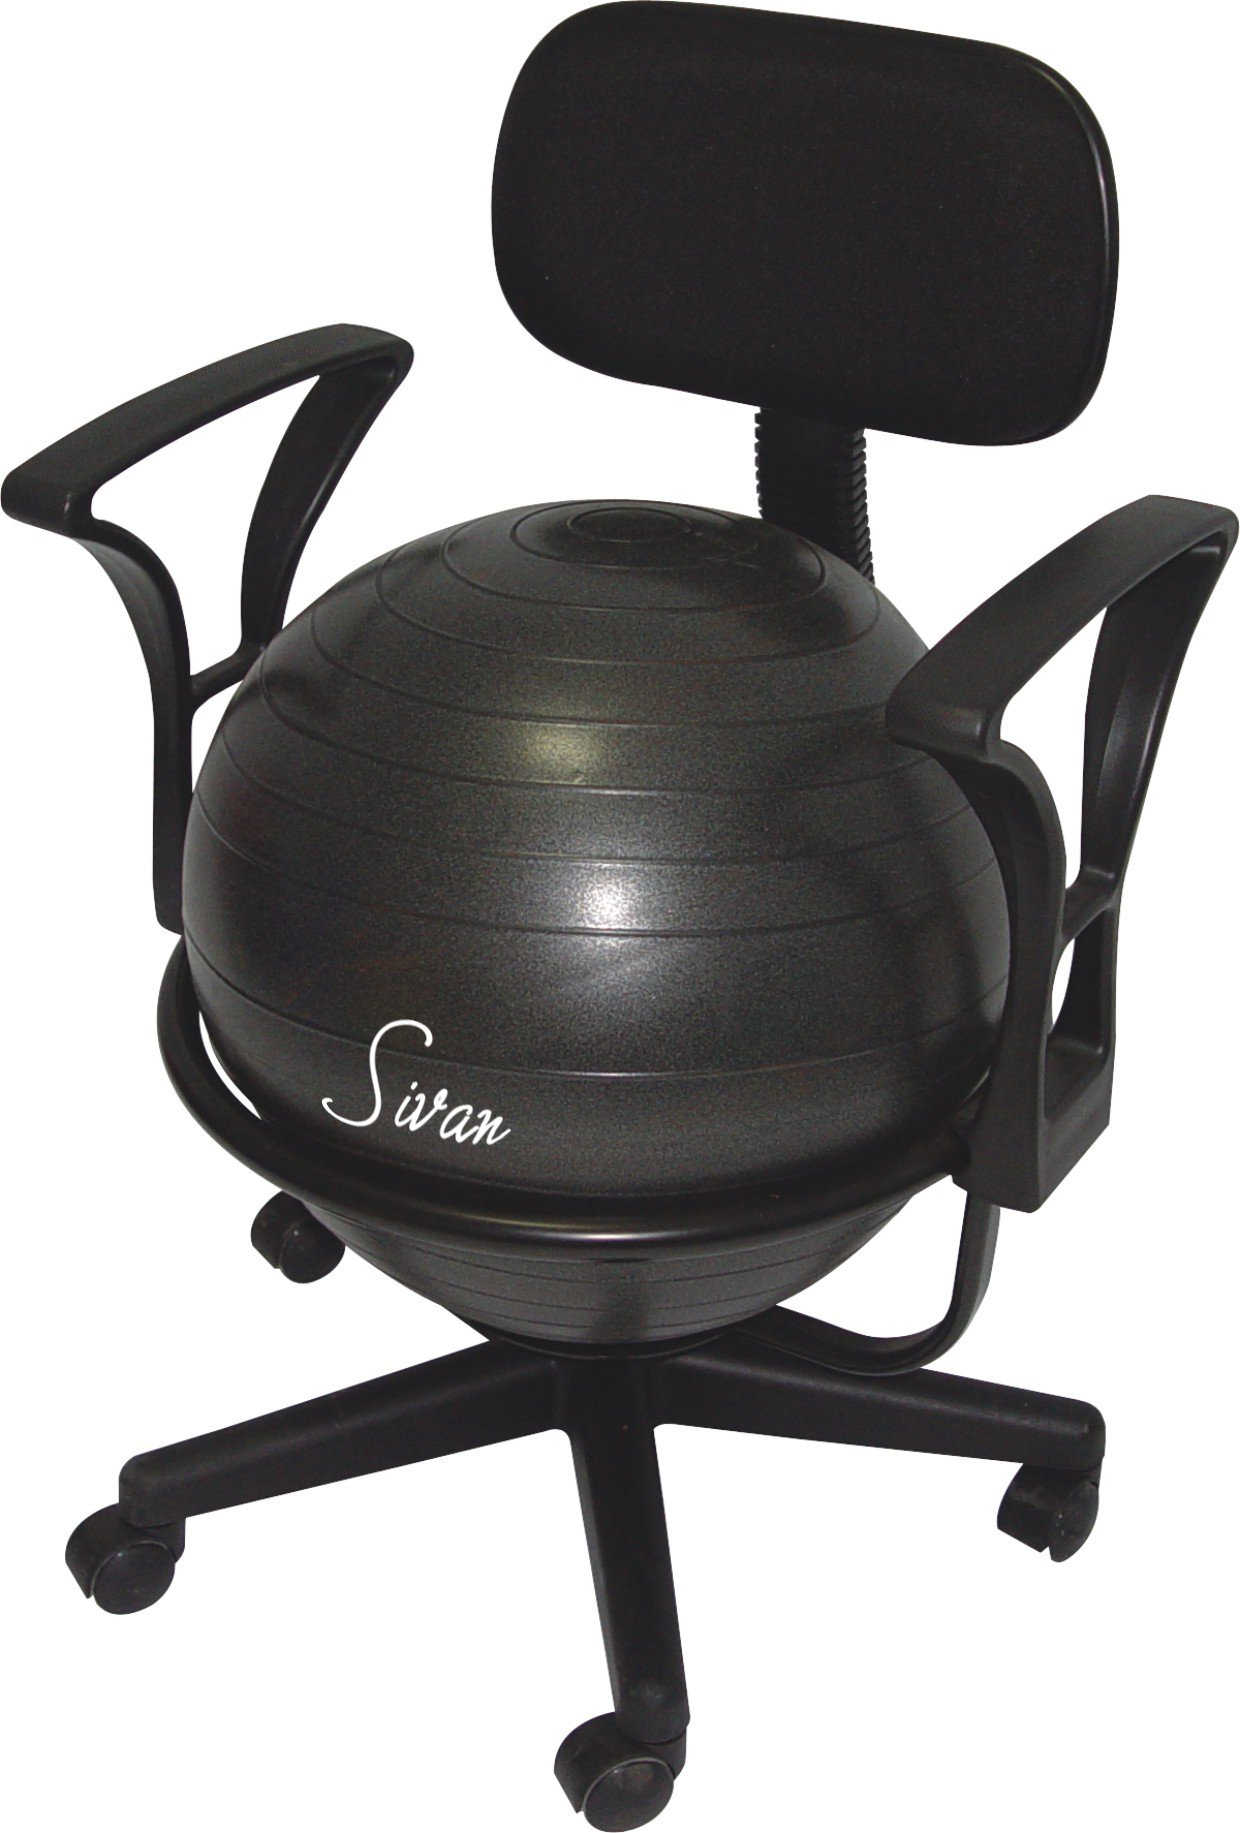 Sivan Health and Fitness Arm Rest Balance Ball Low Fit Chair with Ball and Pump by Sivan Health and Fitness (Image #1)